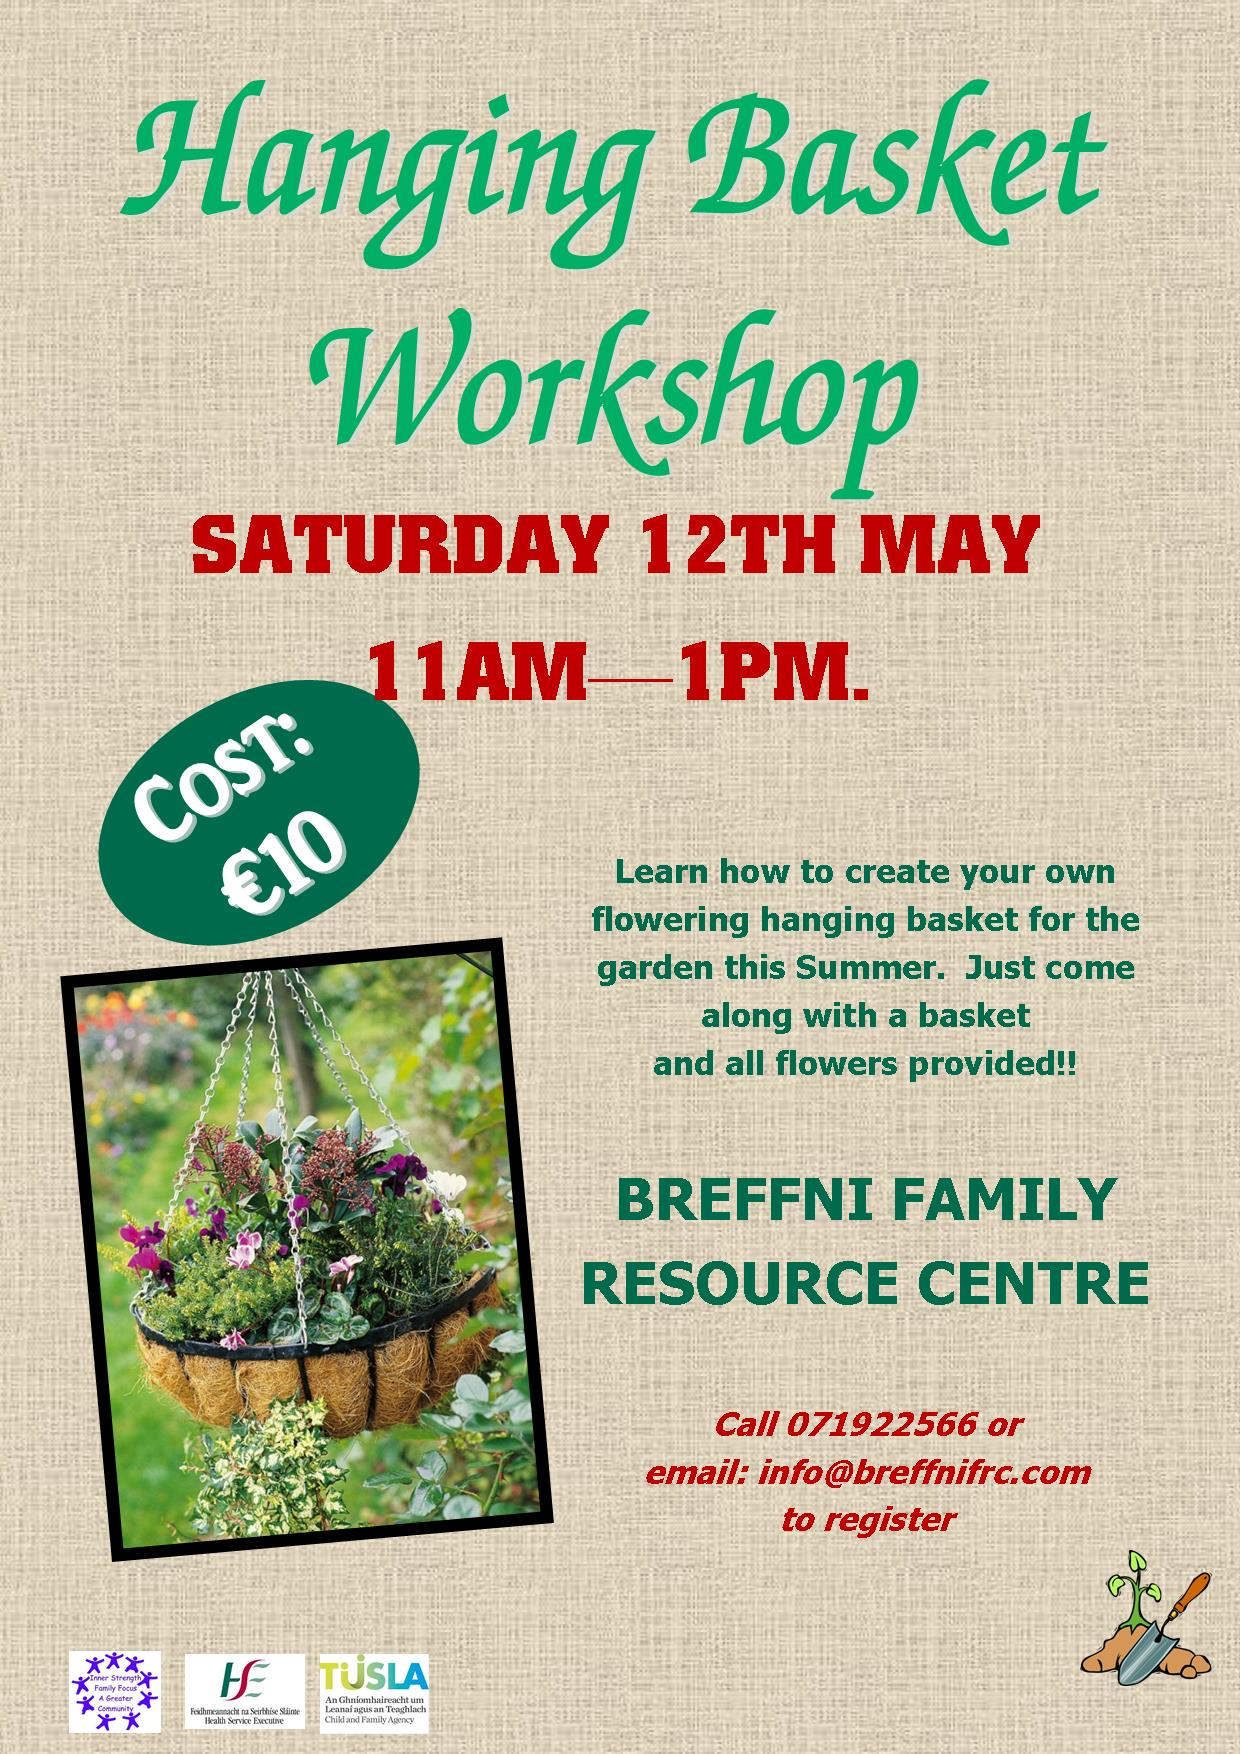 MyCarrick Event - Breffni Family Resource Centre - Hanging Basket Workshop